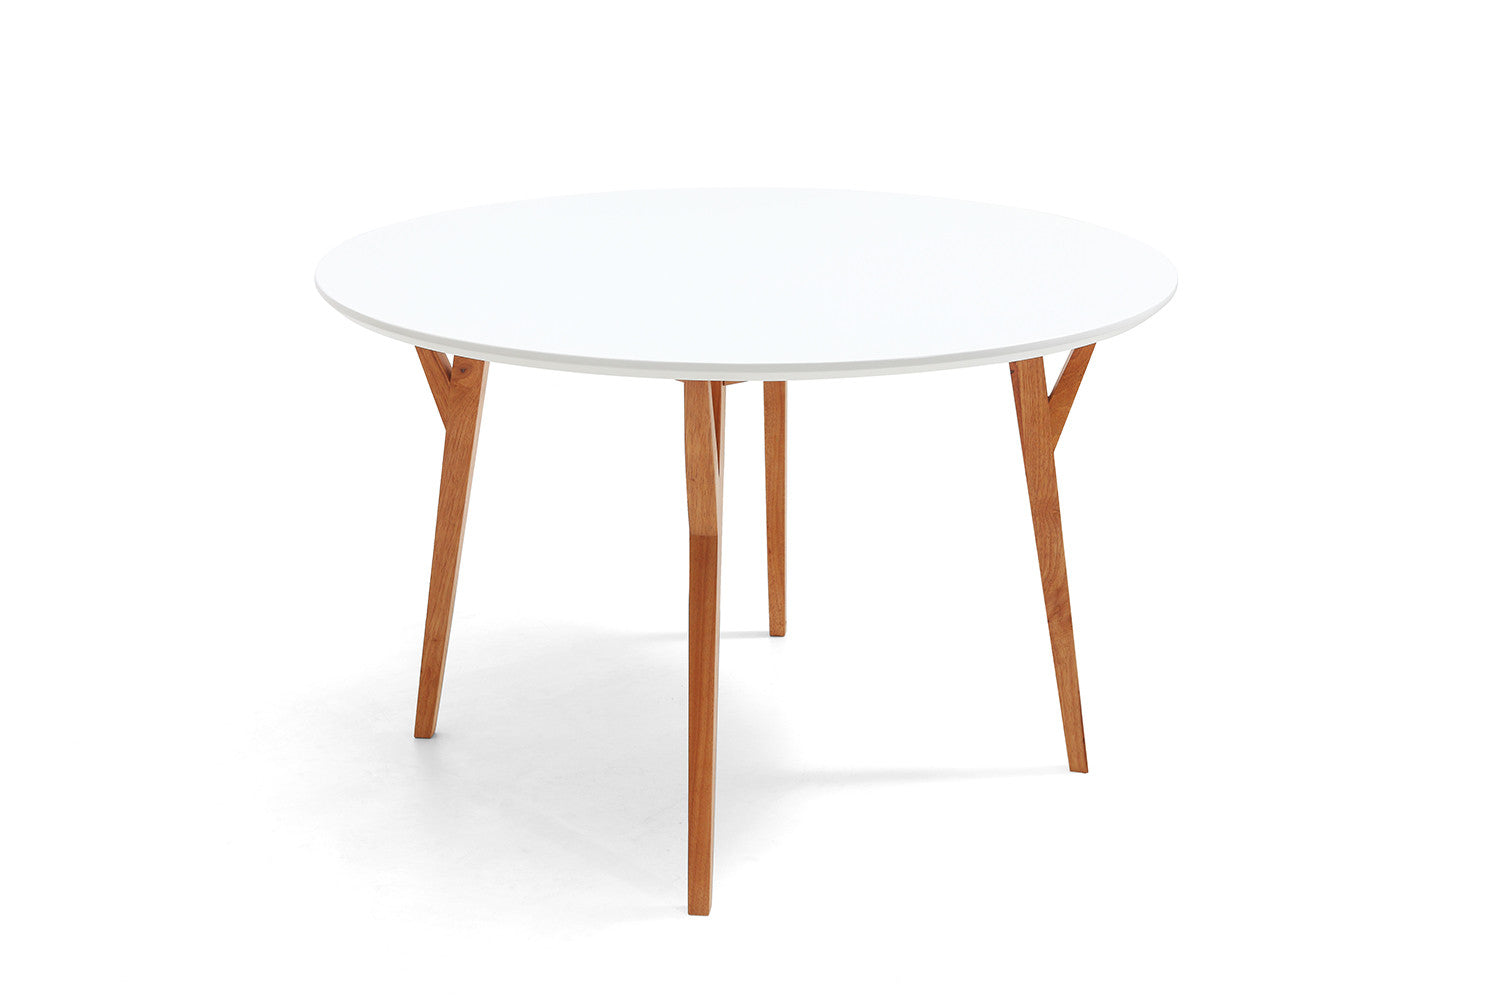 Table de salle manger ronde design scandinave moesa - Table a salle a manger ...